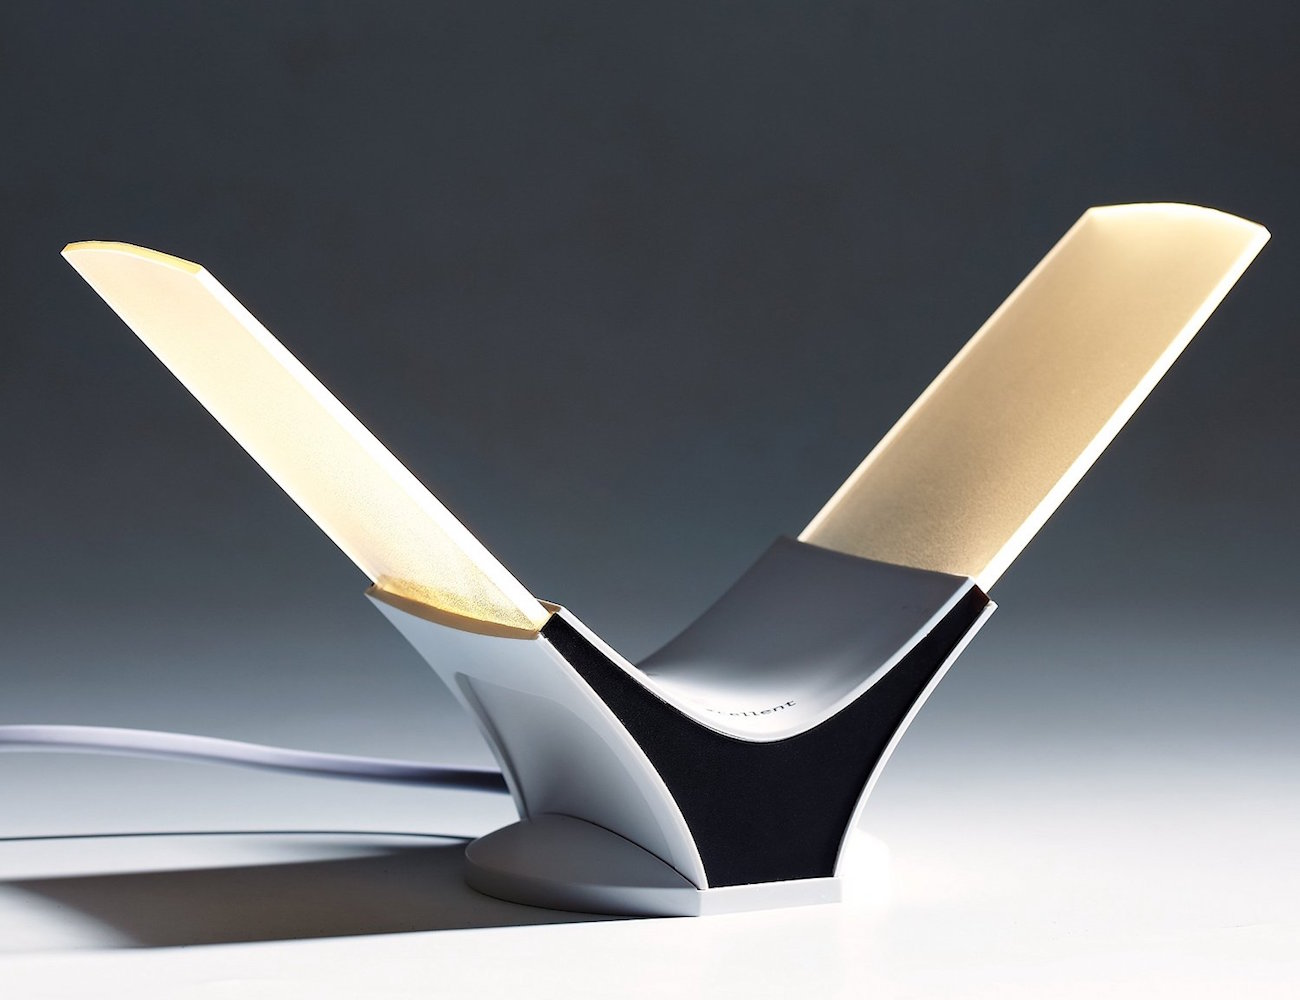 Table Twins Modern LED Table Lamp by XcellentDesign